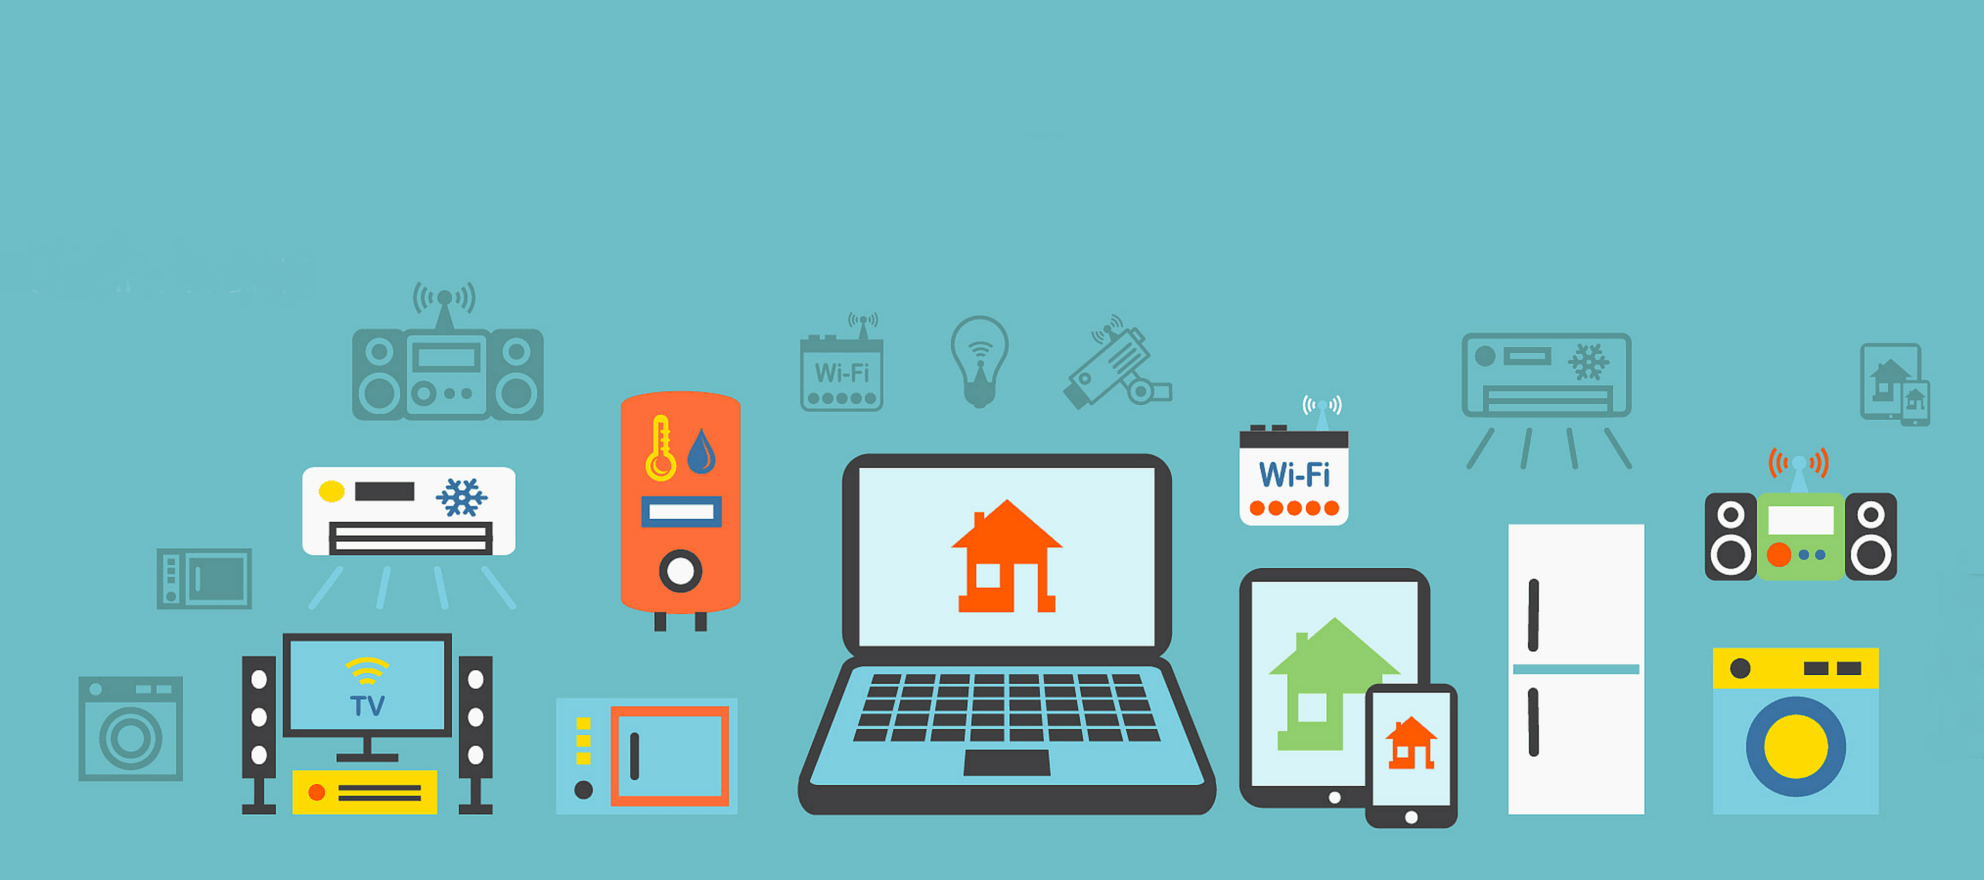 10 smart-home products to keep an eye on